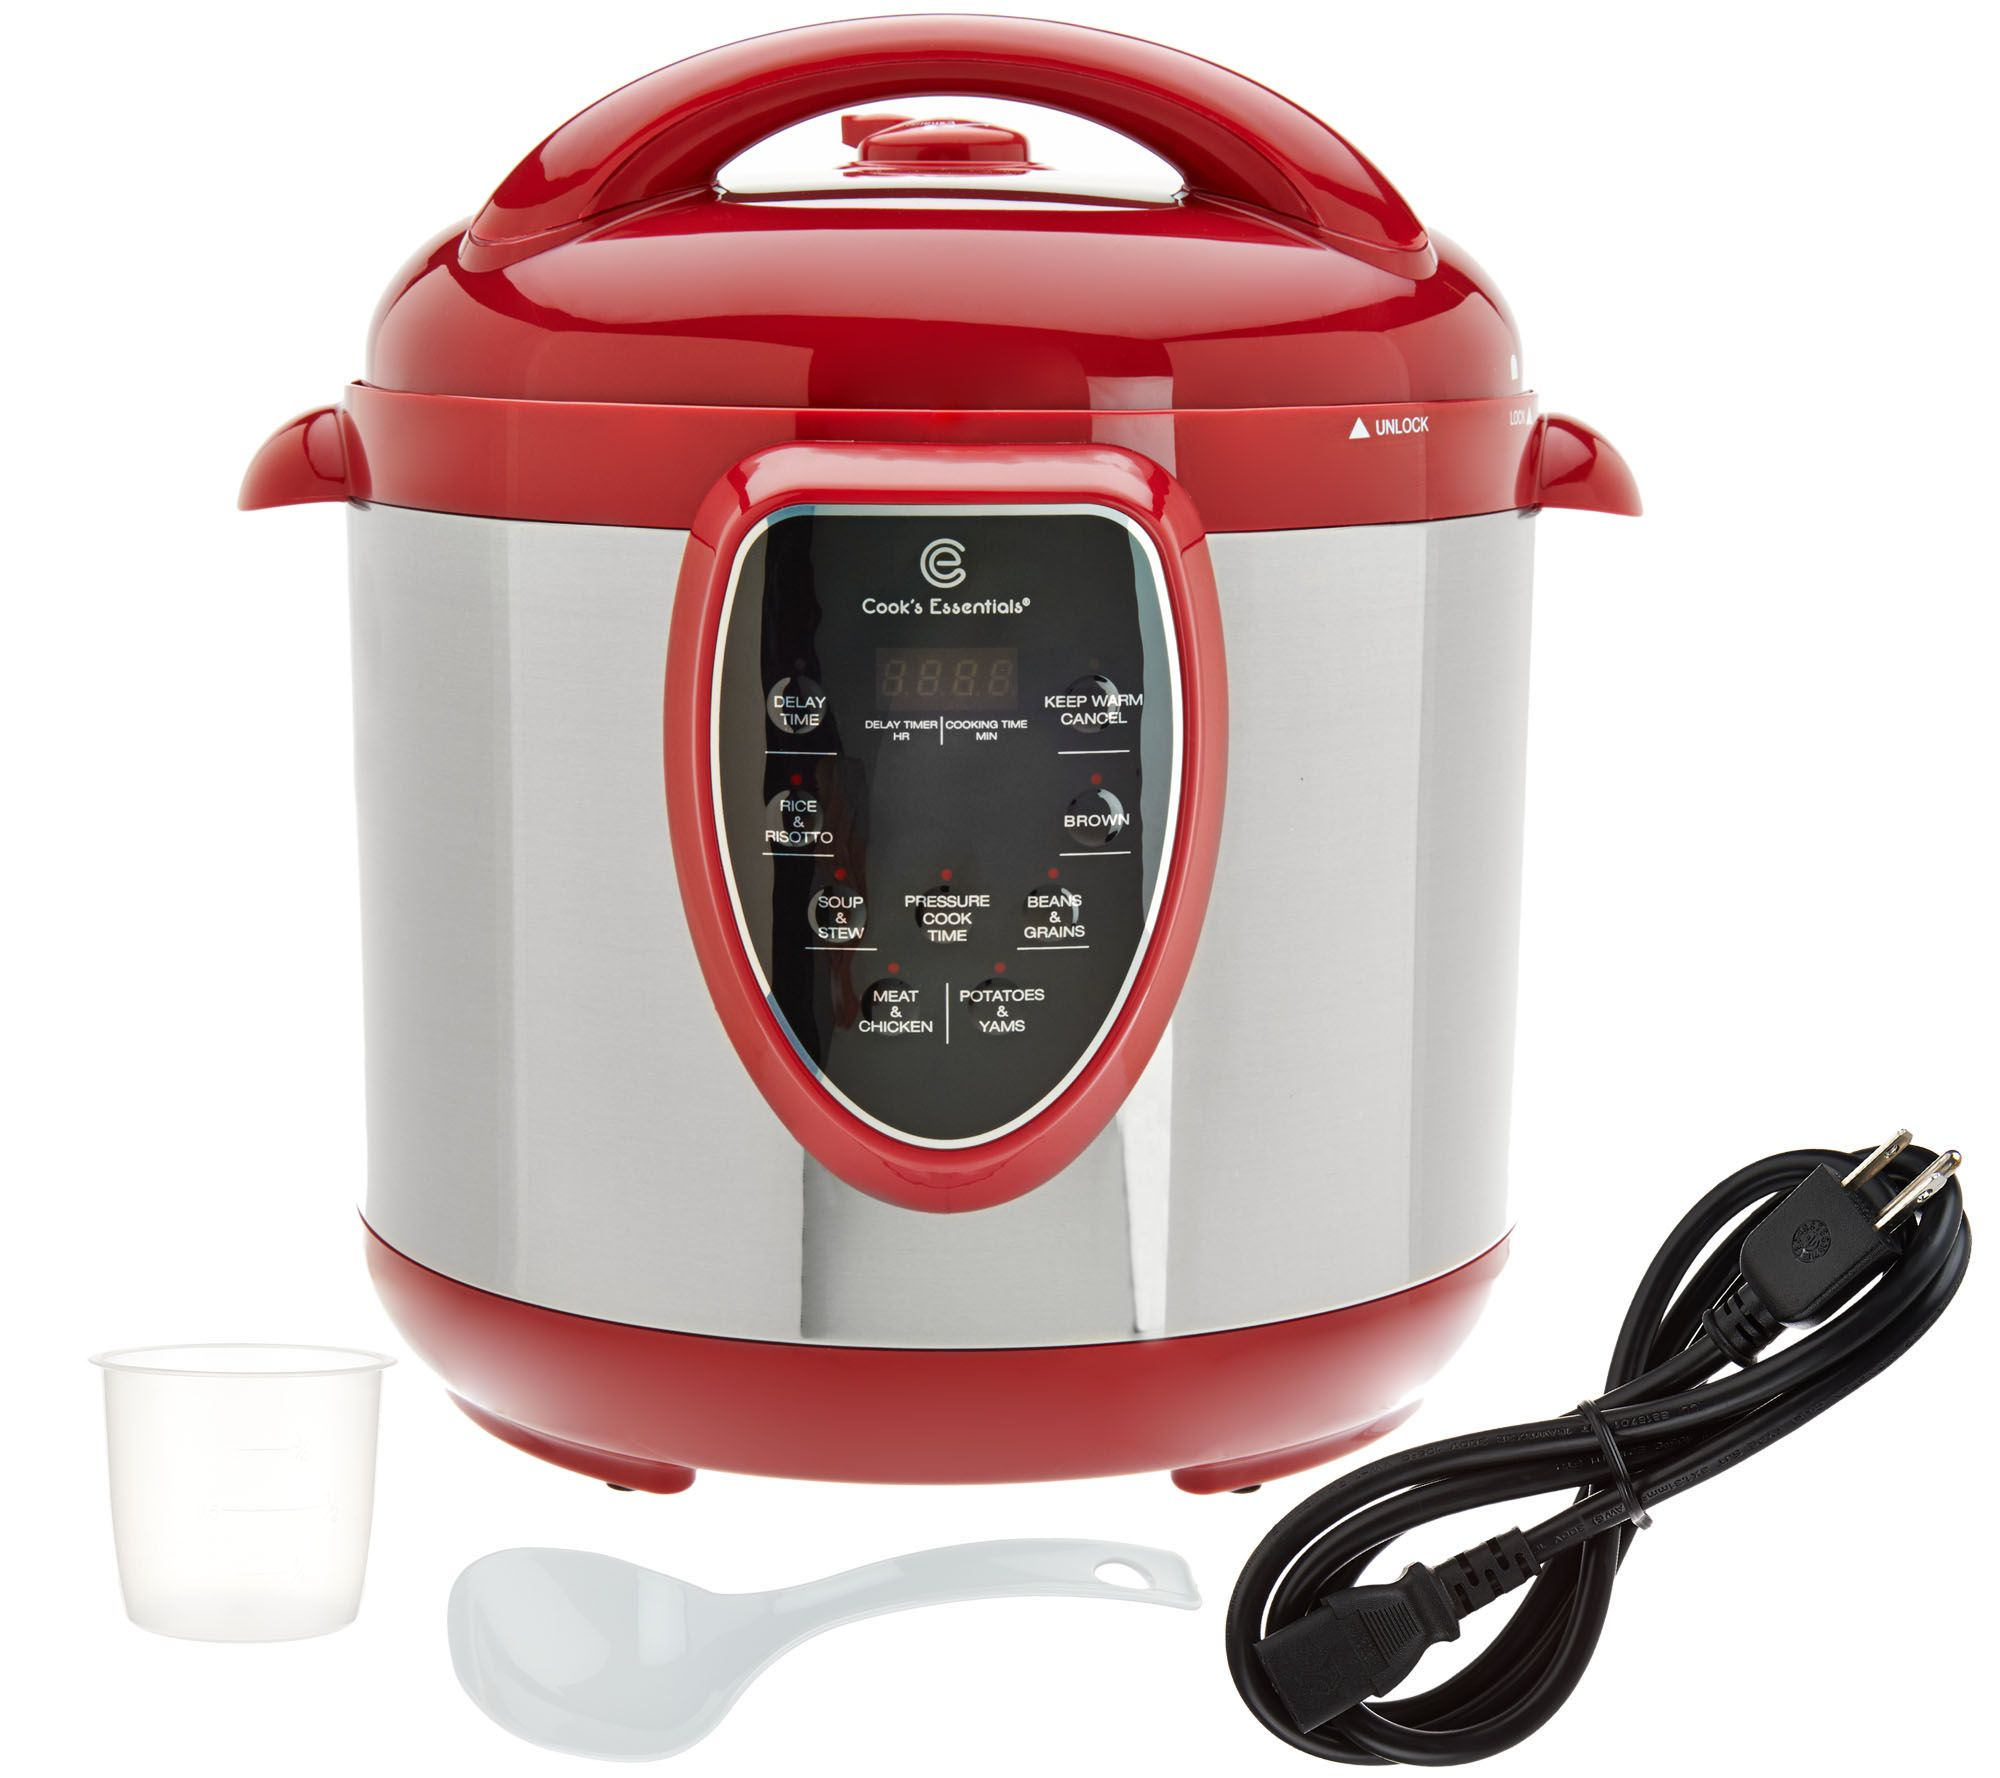 Uncategorized Boots Kitchen Appliances Free Delivery pressure cookers small appliances kitchen food qvc com cooksessentials 8 qt ss digital cooker w accessories k43840